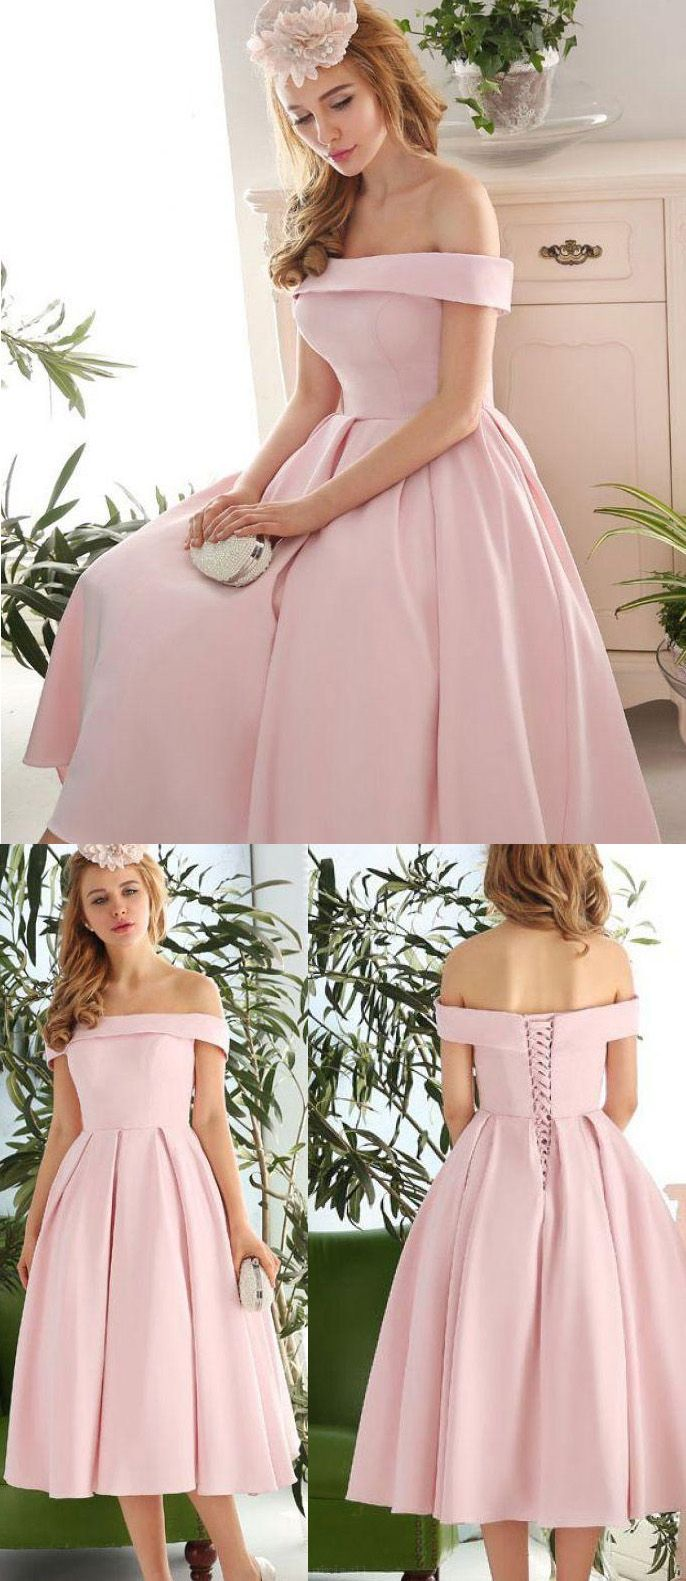 Outlet delightful pink short prom homecoming dress with lace up